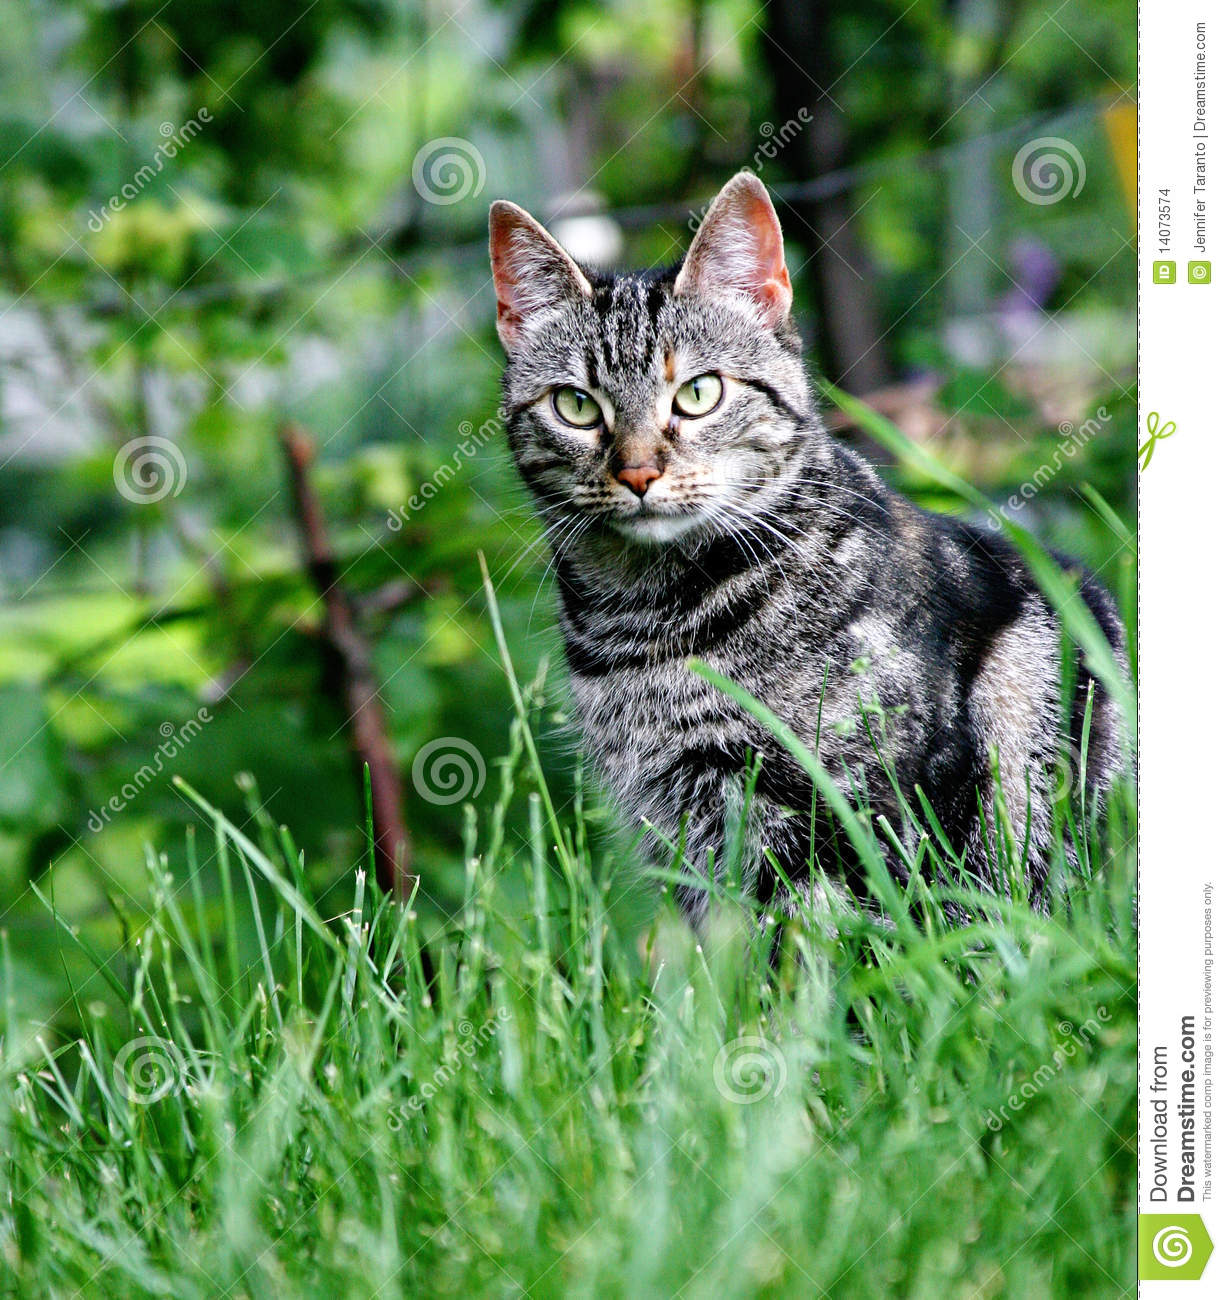 Cat In A Yard Stock Photo. Image Of Kitty, Outside, Grass